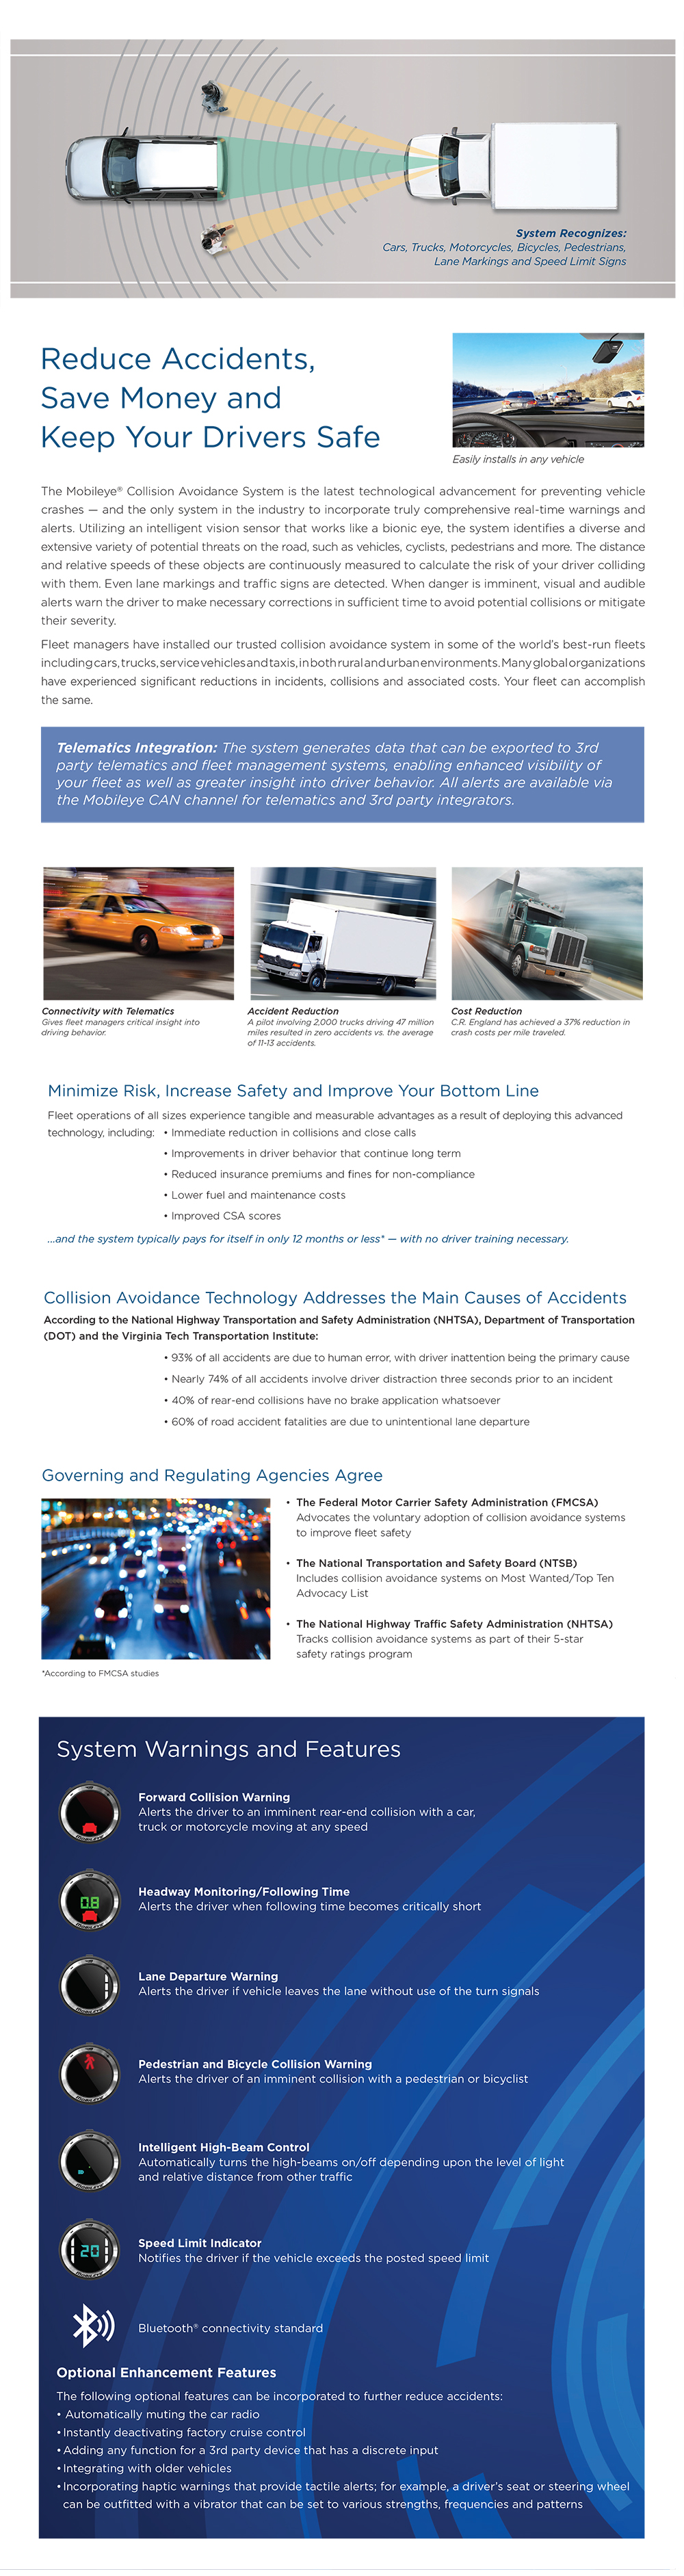 HC-Mobileye Product Highlights